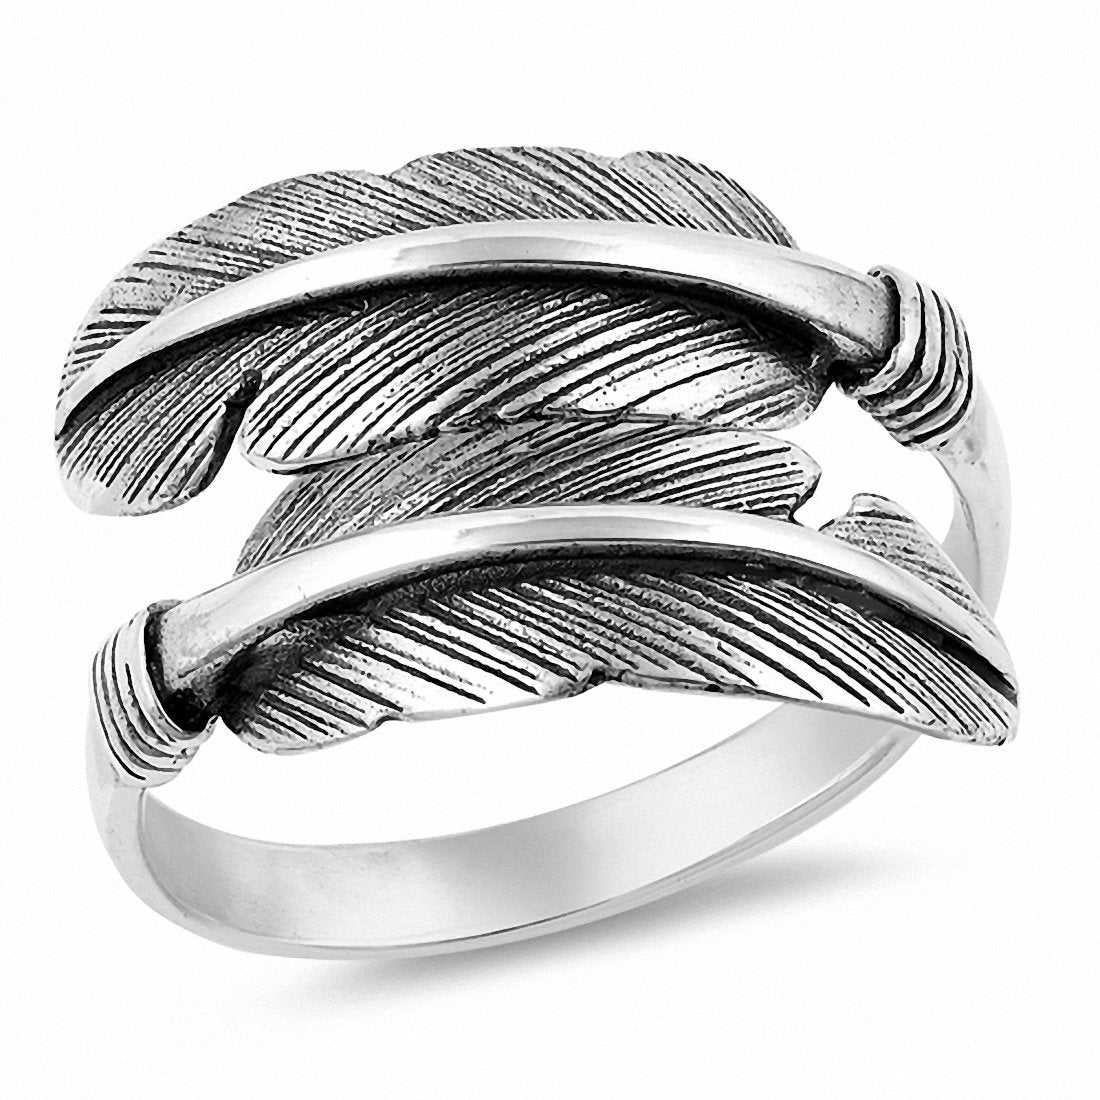 Feather Band Ring Simple Plain 925 Sterling Silver Choose Color